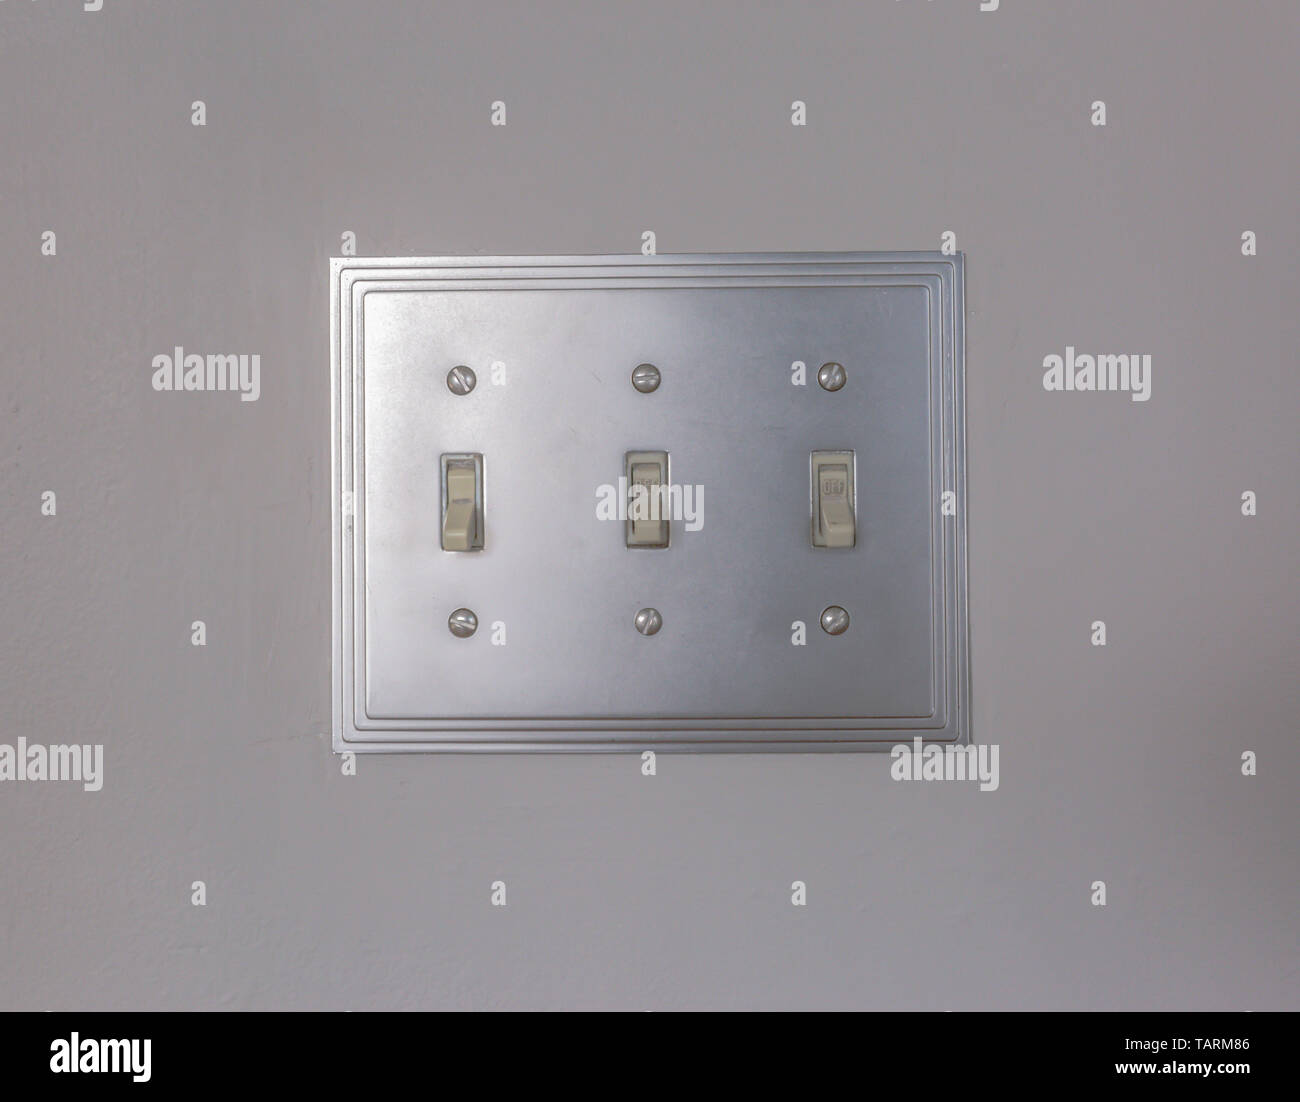 Close up view of vertical flip toggle light switches in off mode. The electrical light switches is mounted on the white wall inside a house. - Stock Image